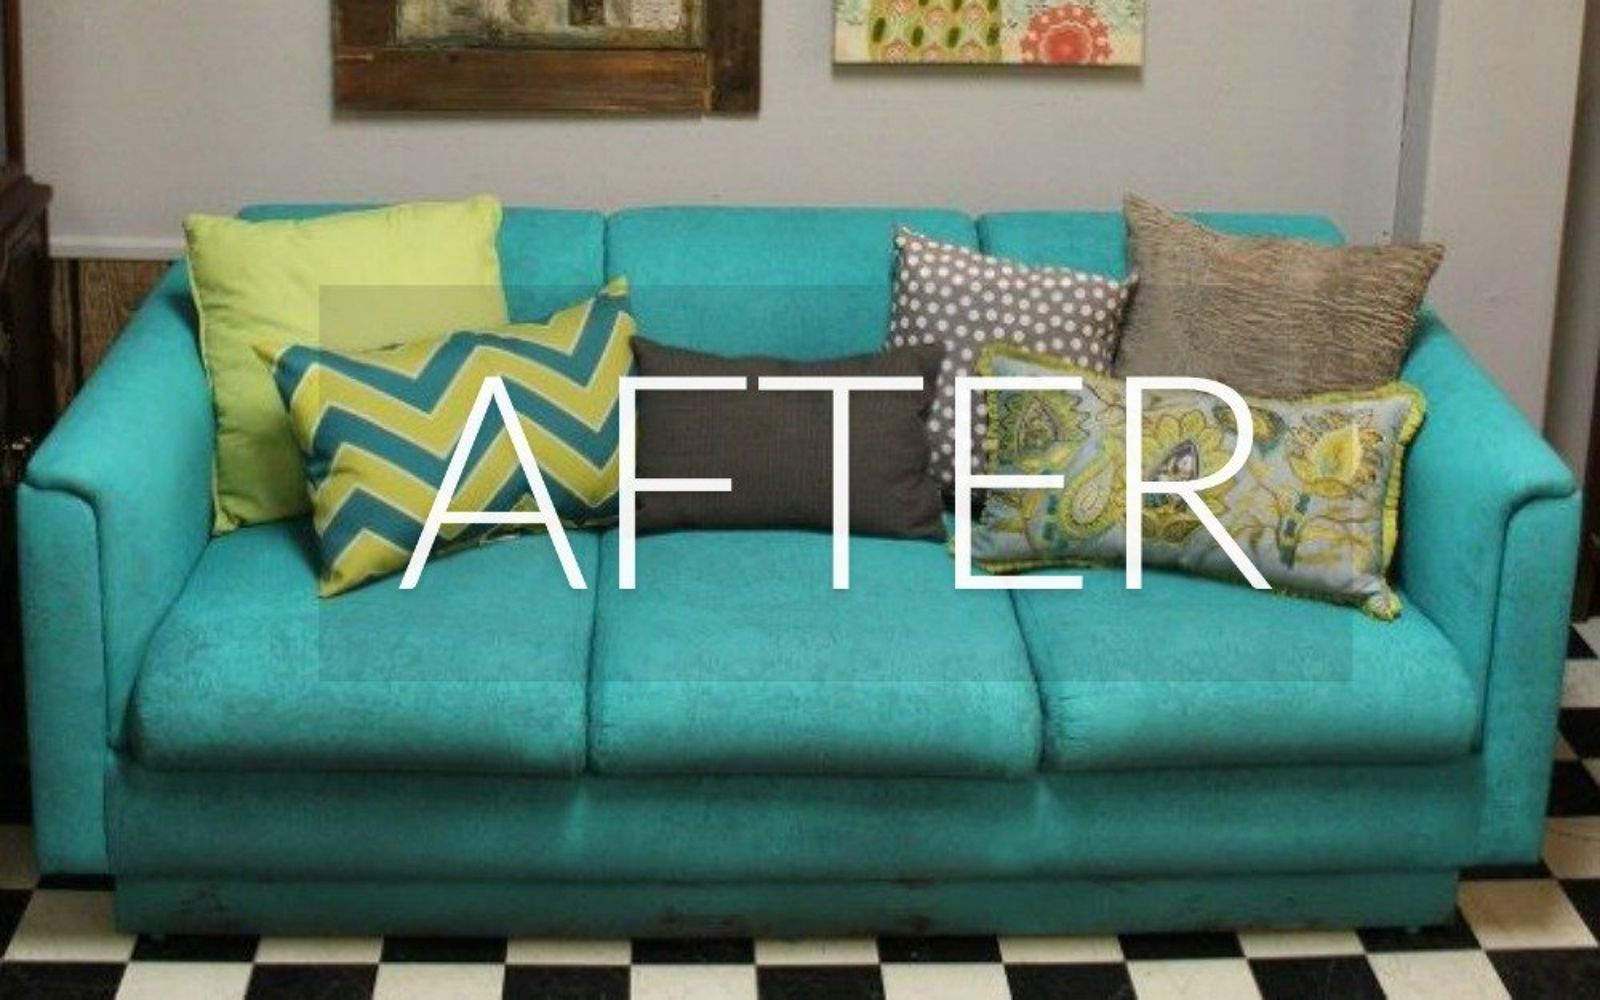 s hide your couch s wear and tear with these 9 ingenious ideas, painted furniture, After A new blue beauty